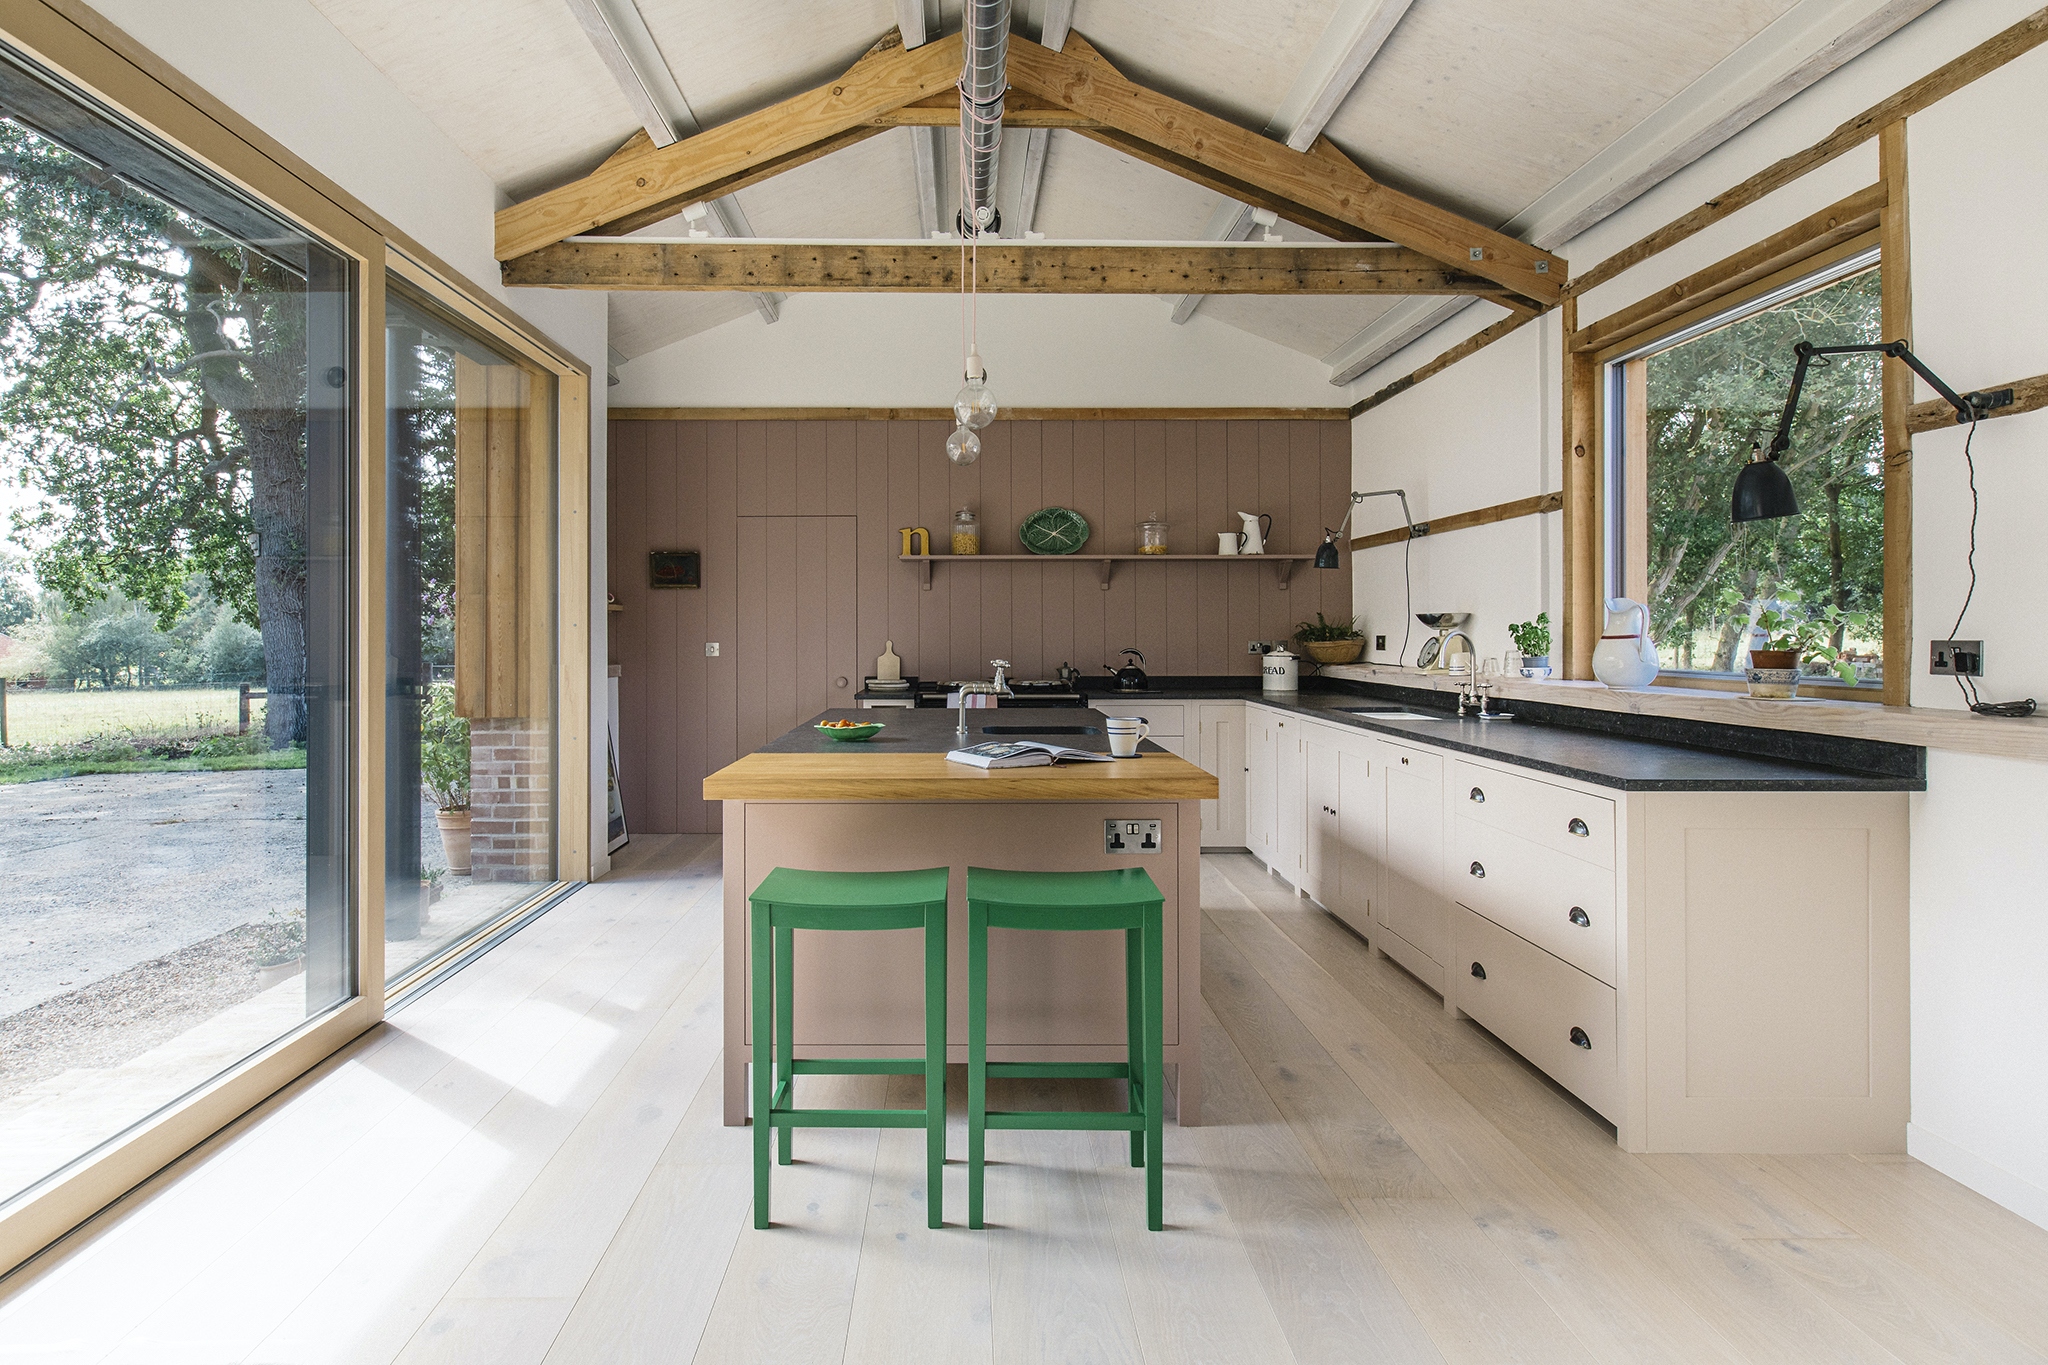 An Artful Plain English Kitchen Design in a Converted Barn